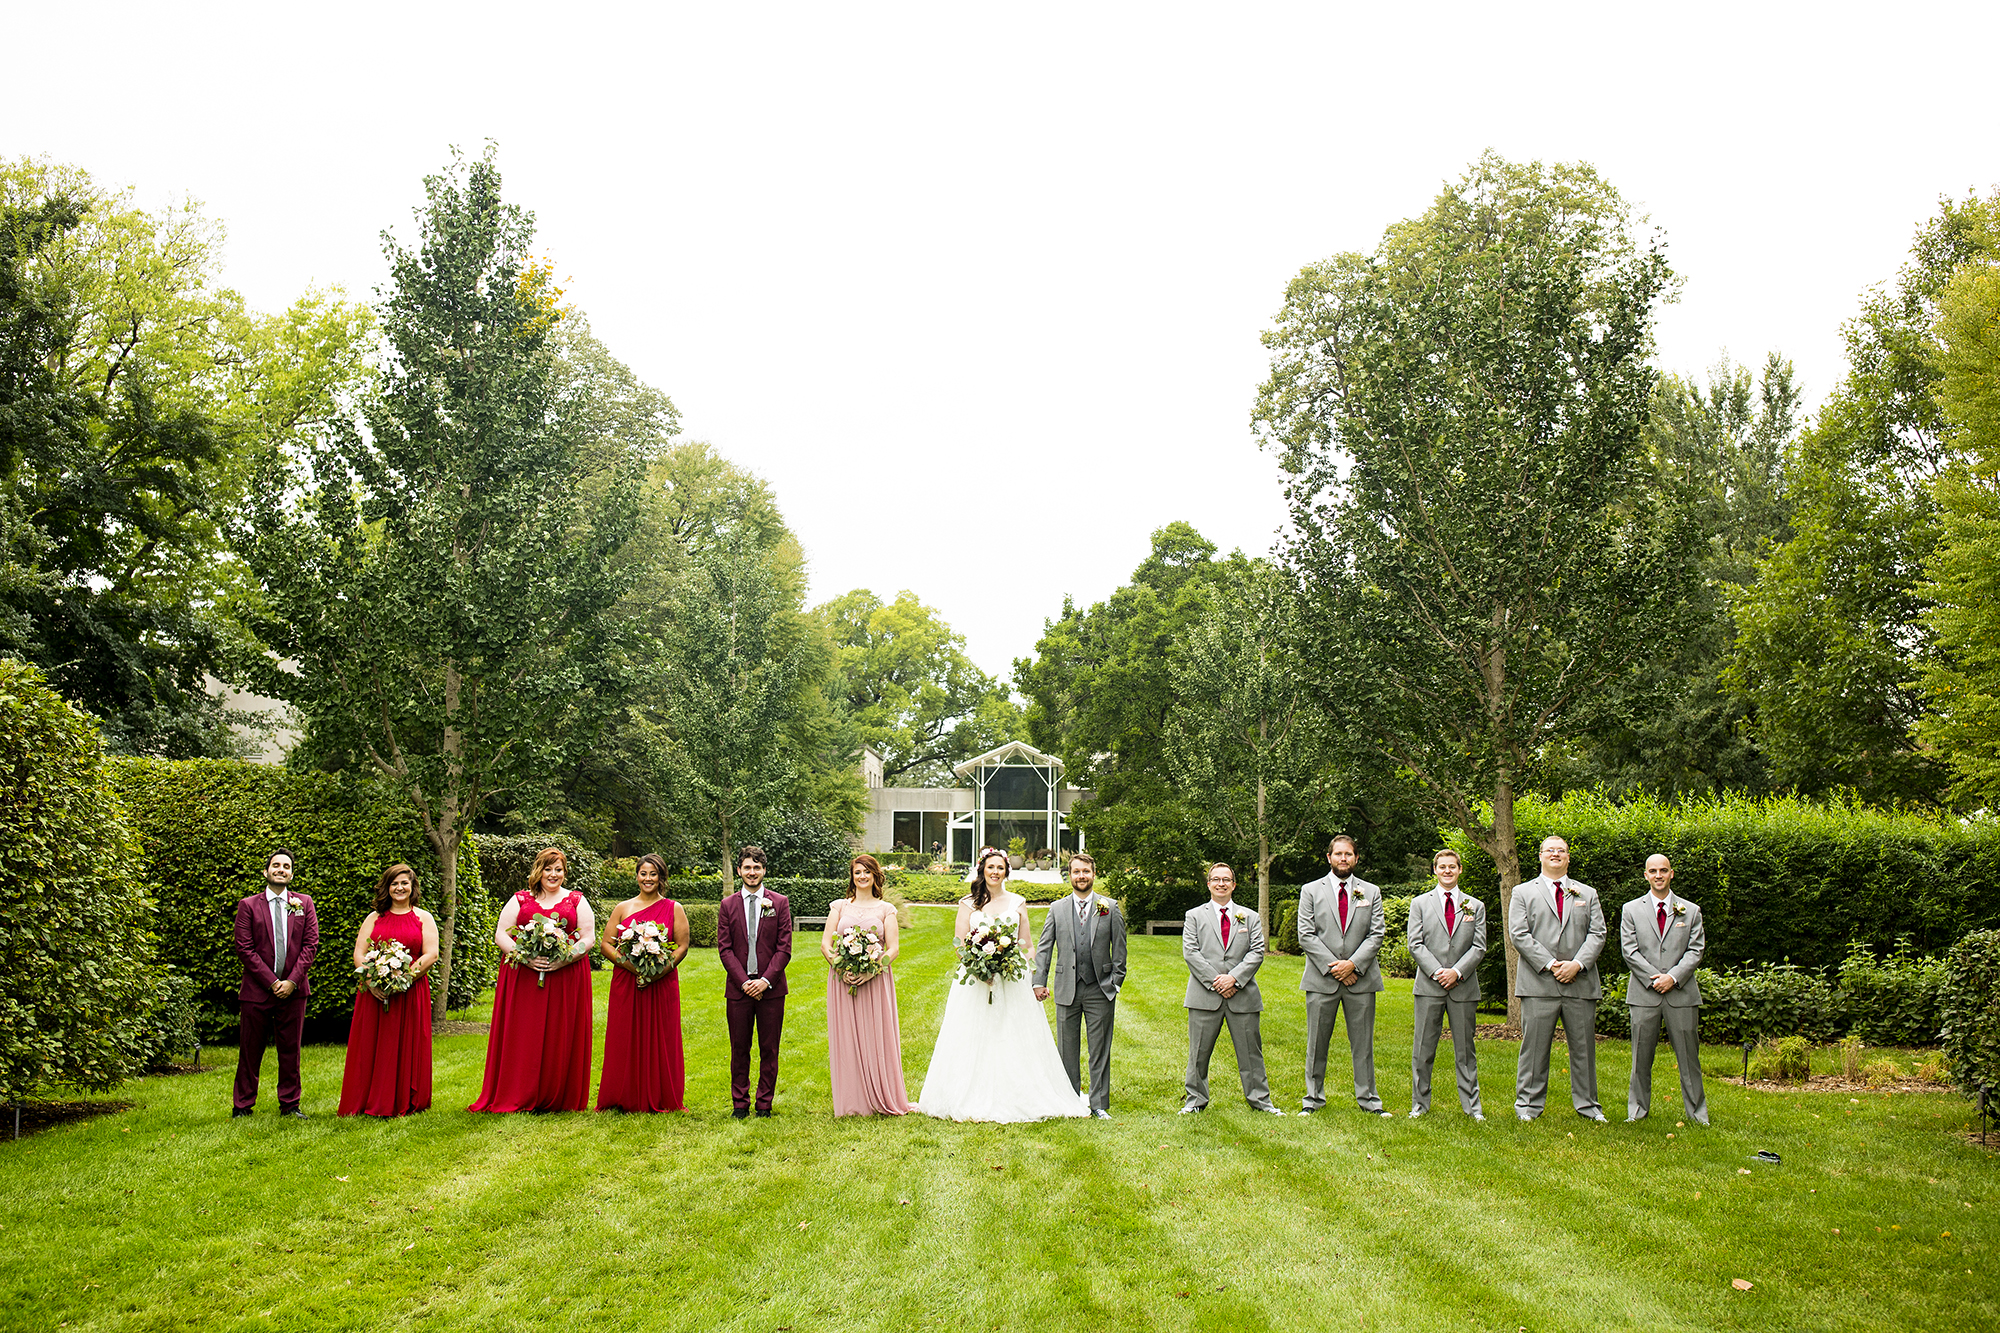 Seriously_Sabrina_Photography_Lisle_Illinois_Morton_Arboretum_Wedding_Day_Gowen47.jpg